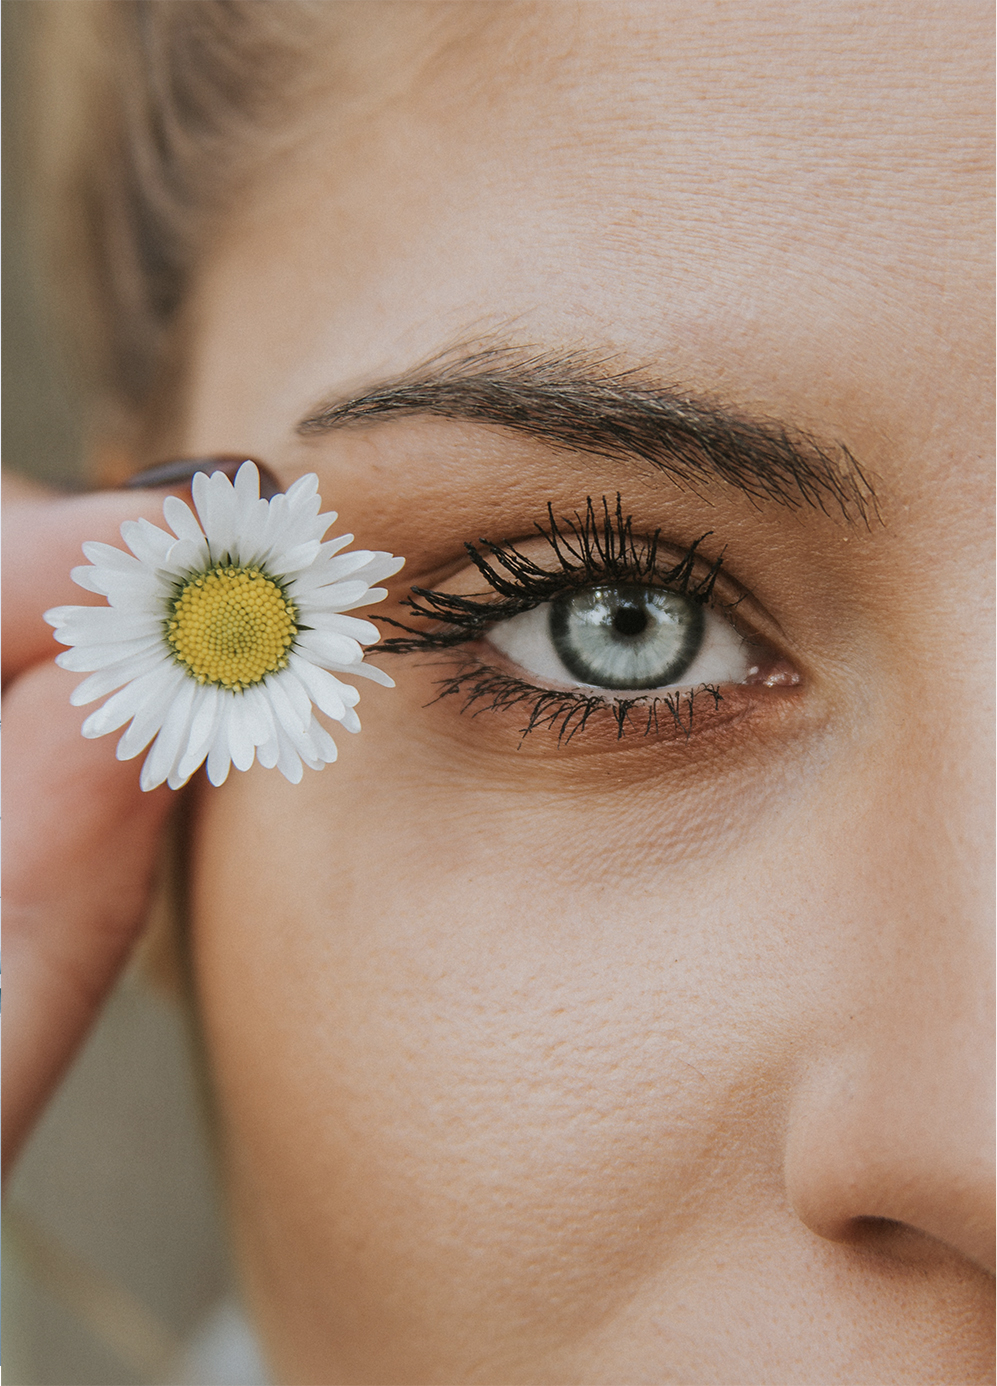 EYE CREAM: DITCH IT OR STICK WITH IT?